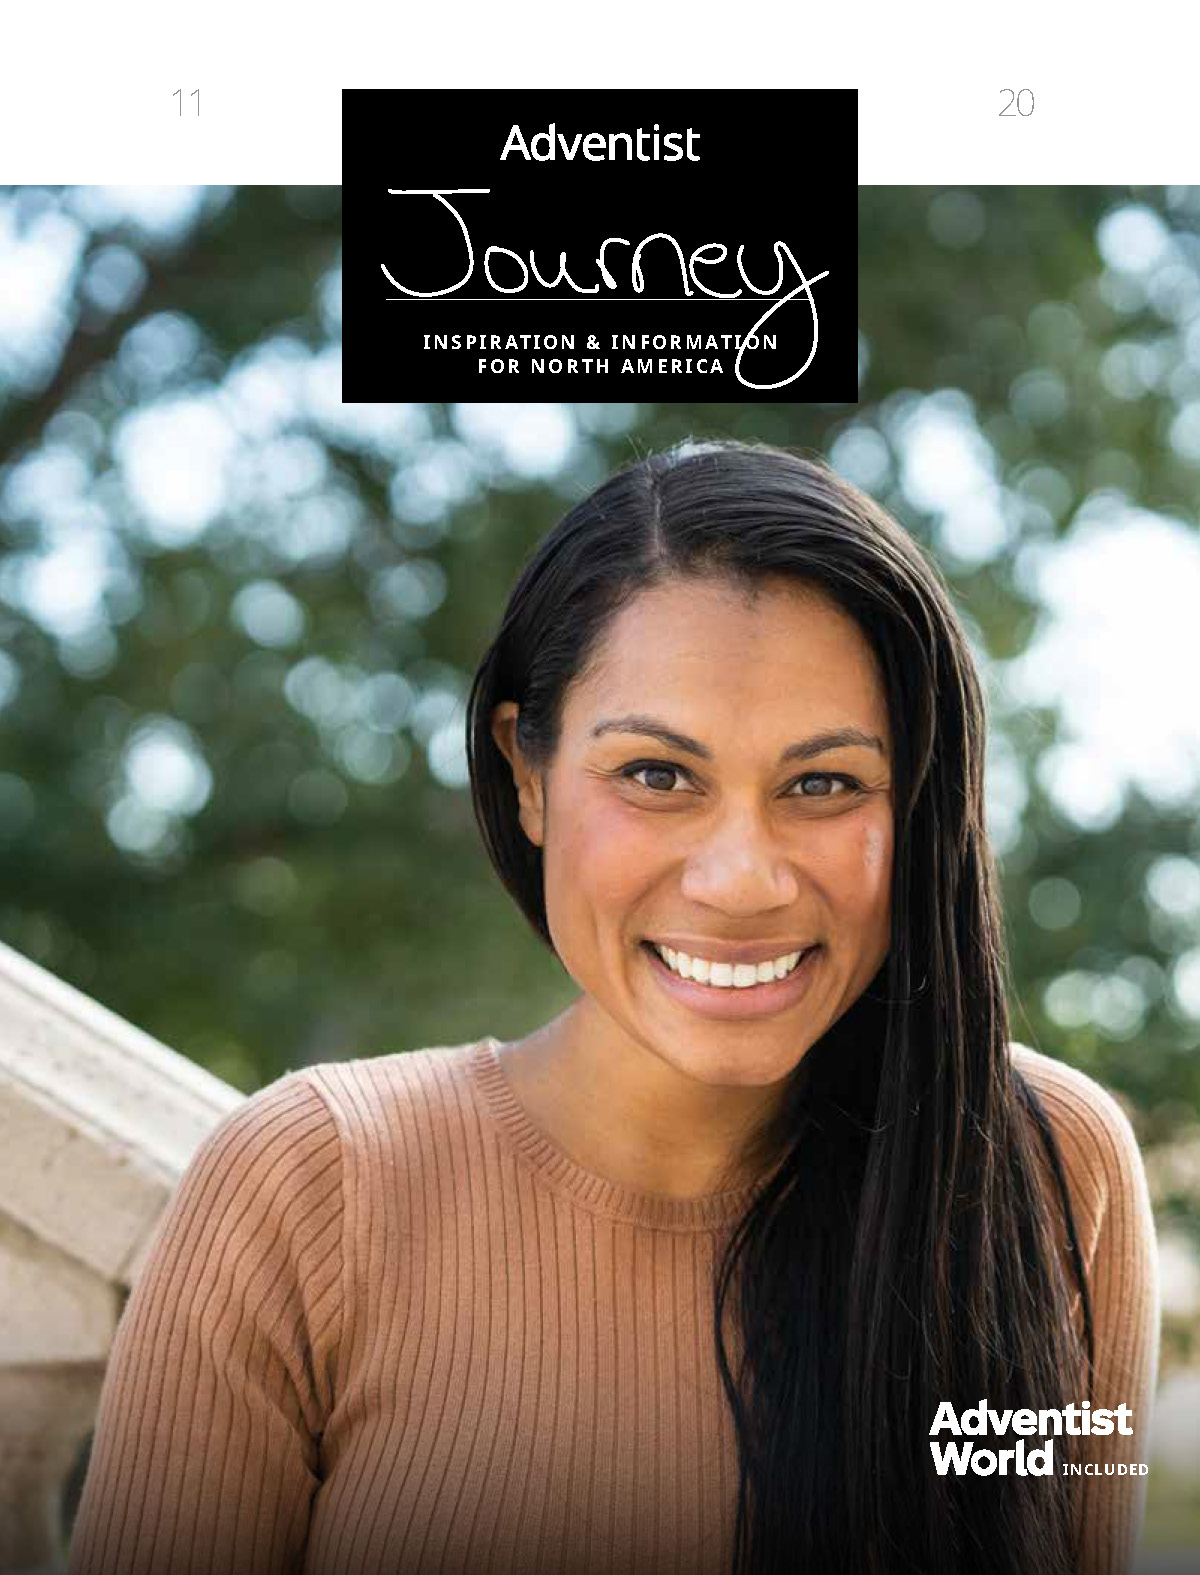 Heather Thompson-Day on the cover of Adventist Journey magazine